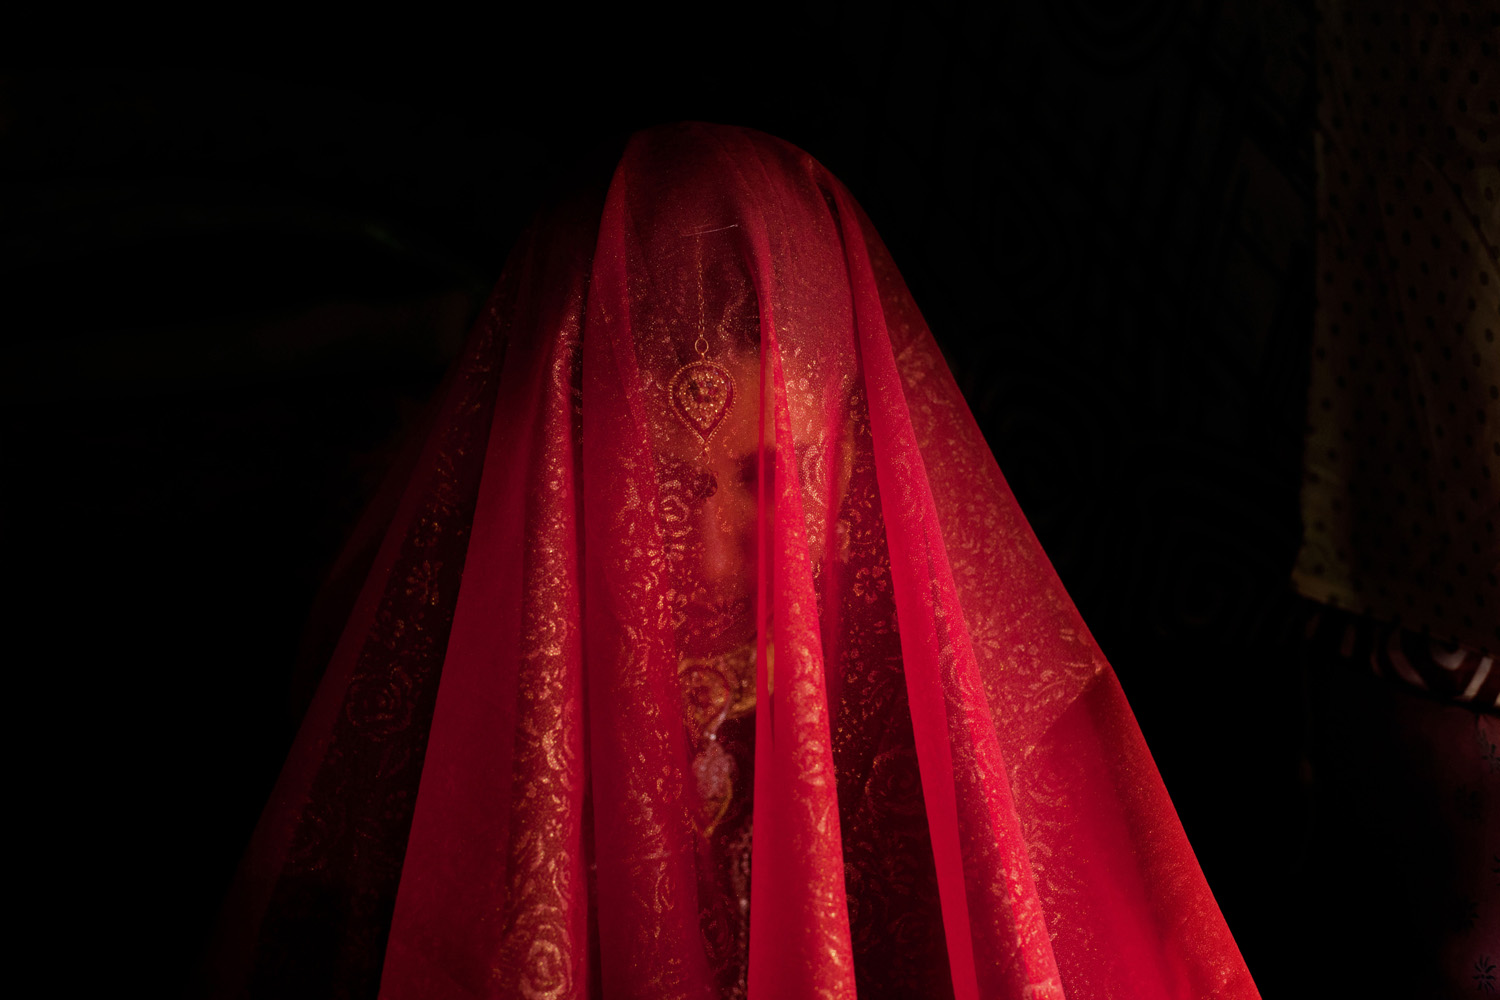 May 31, 2013. Zareena, a Kashmiri Bakarwal bride sits inside a temporary camp with her face covered with scarf during her wedding ceremony on the outskirts of Srinagar, India.